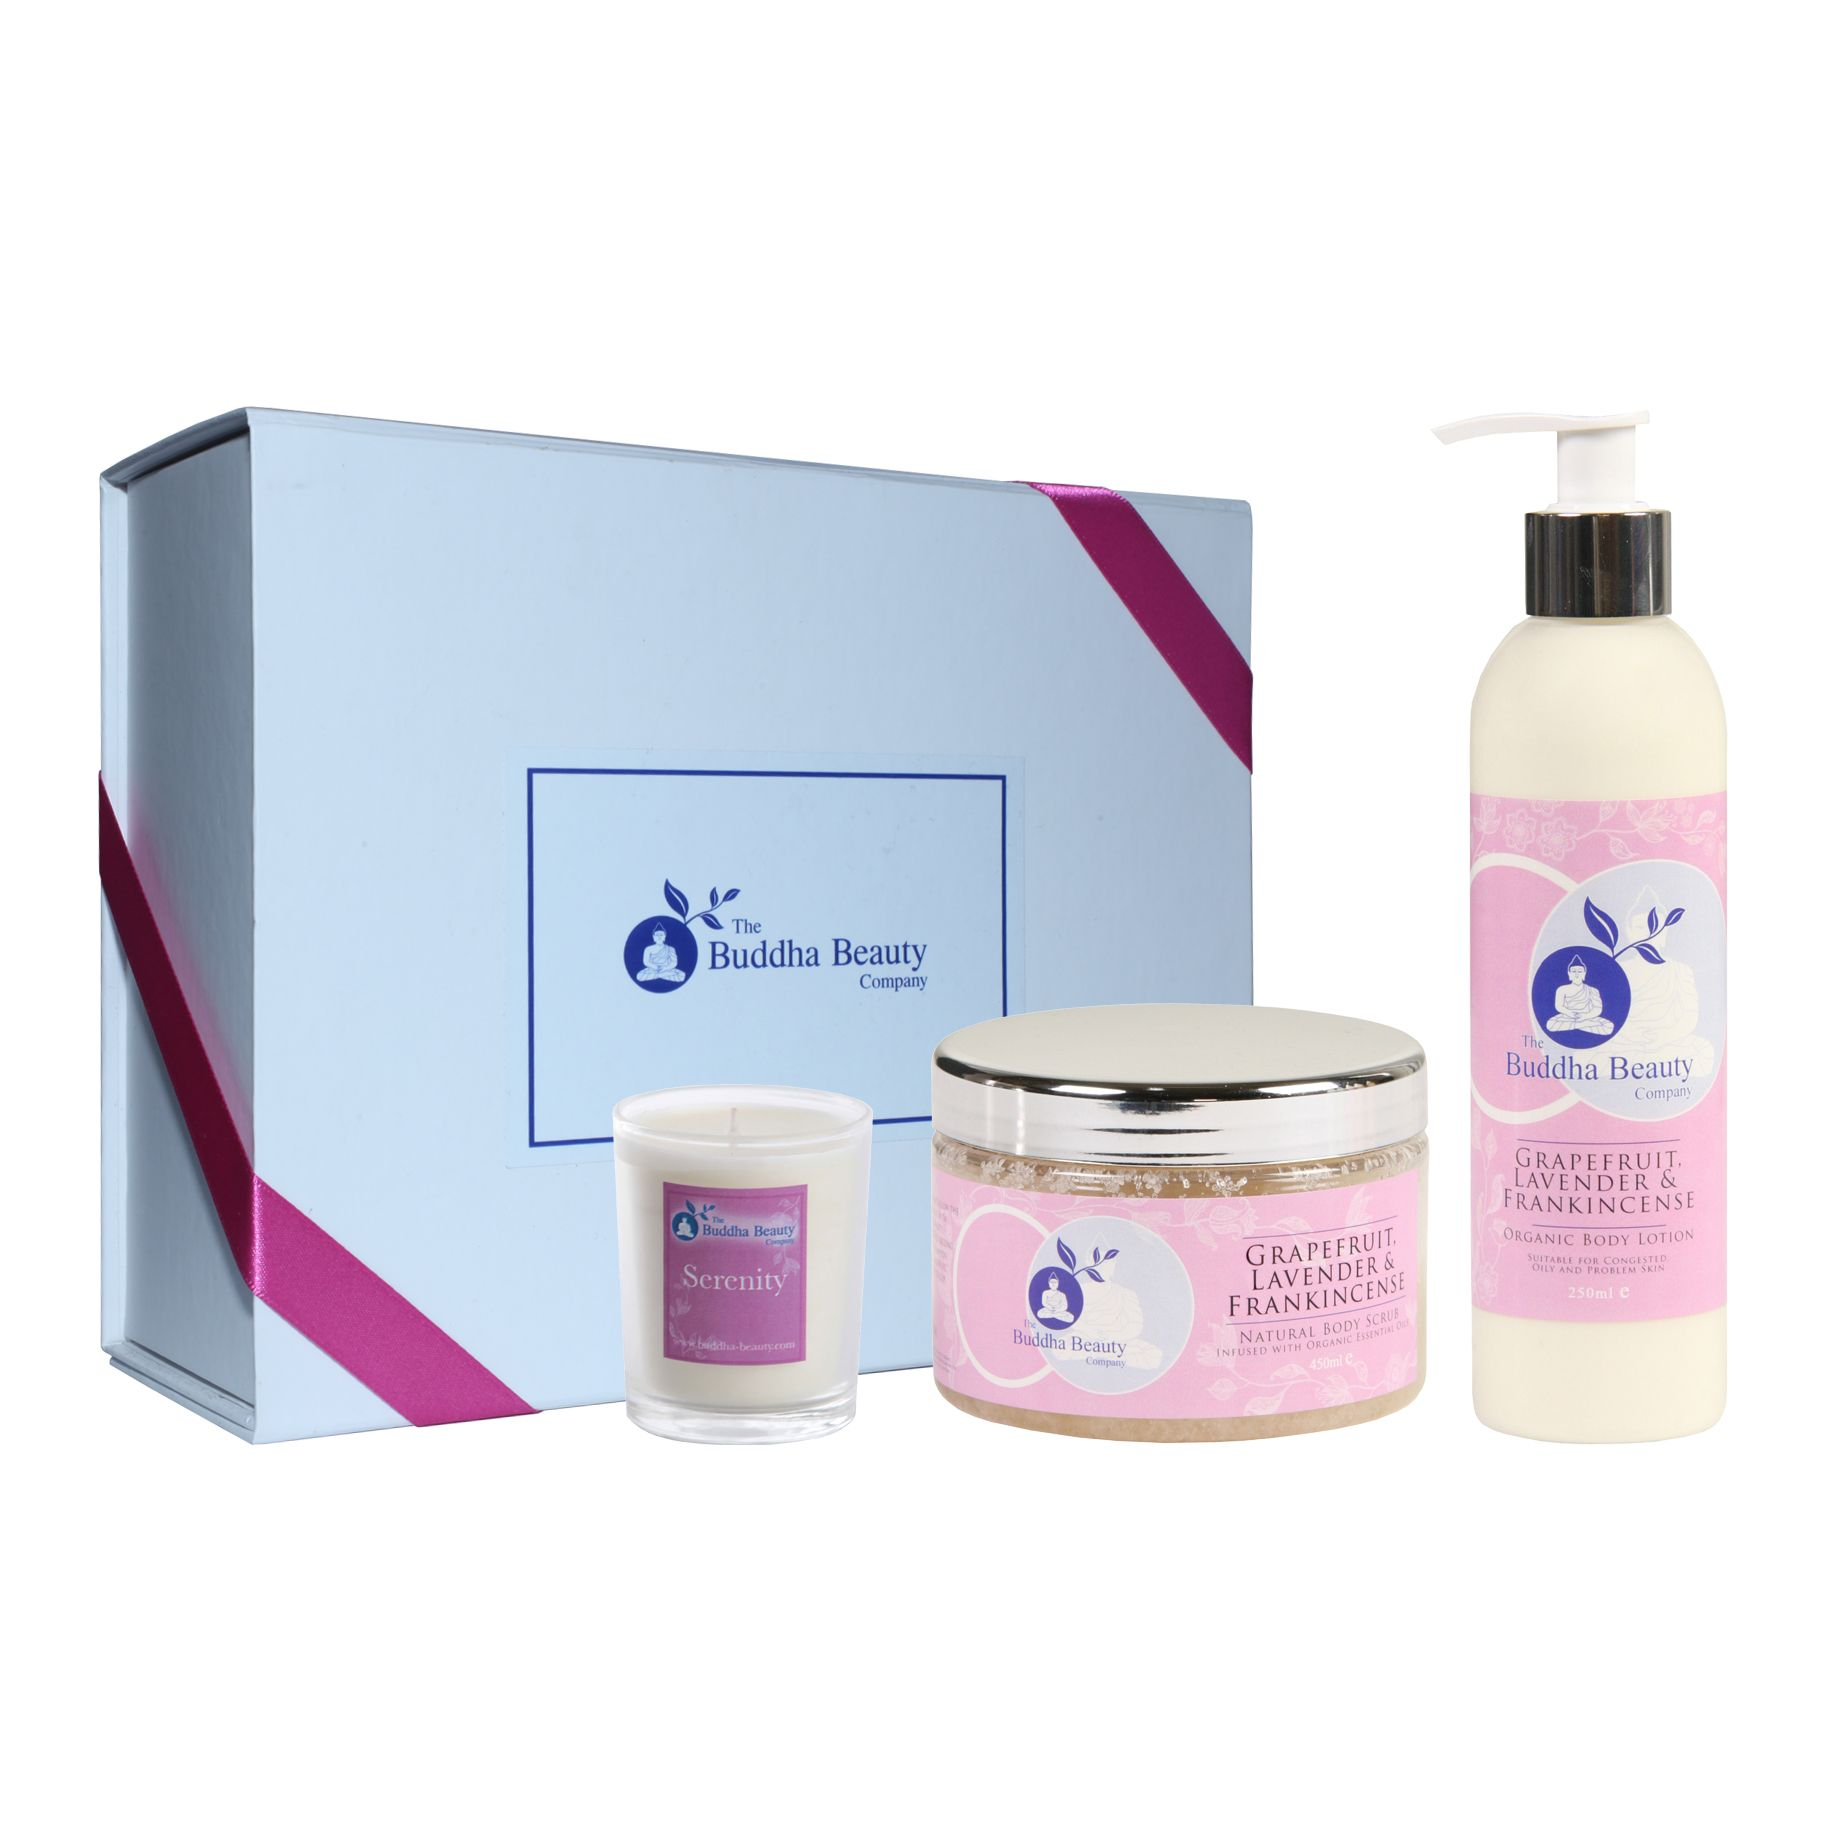 £30 with free shipping. Organic beauty products, Candles